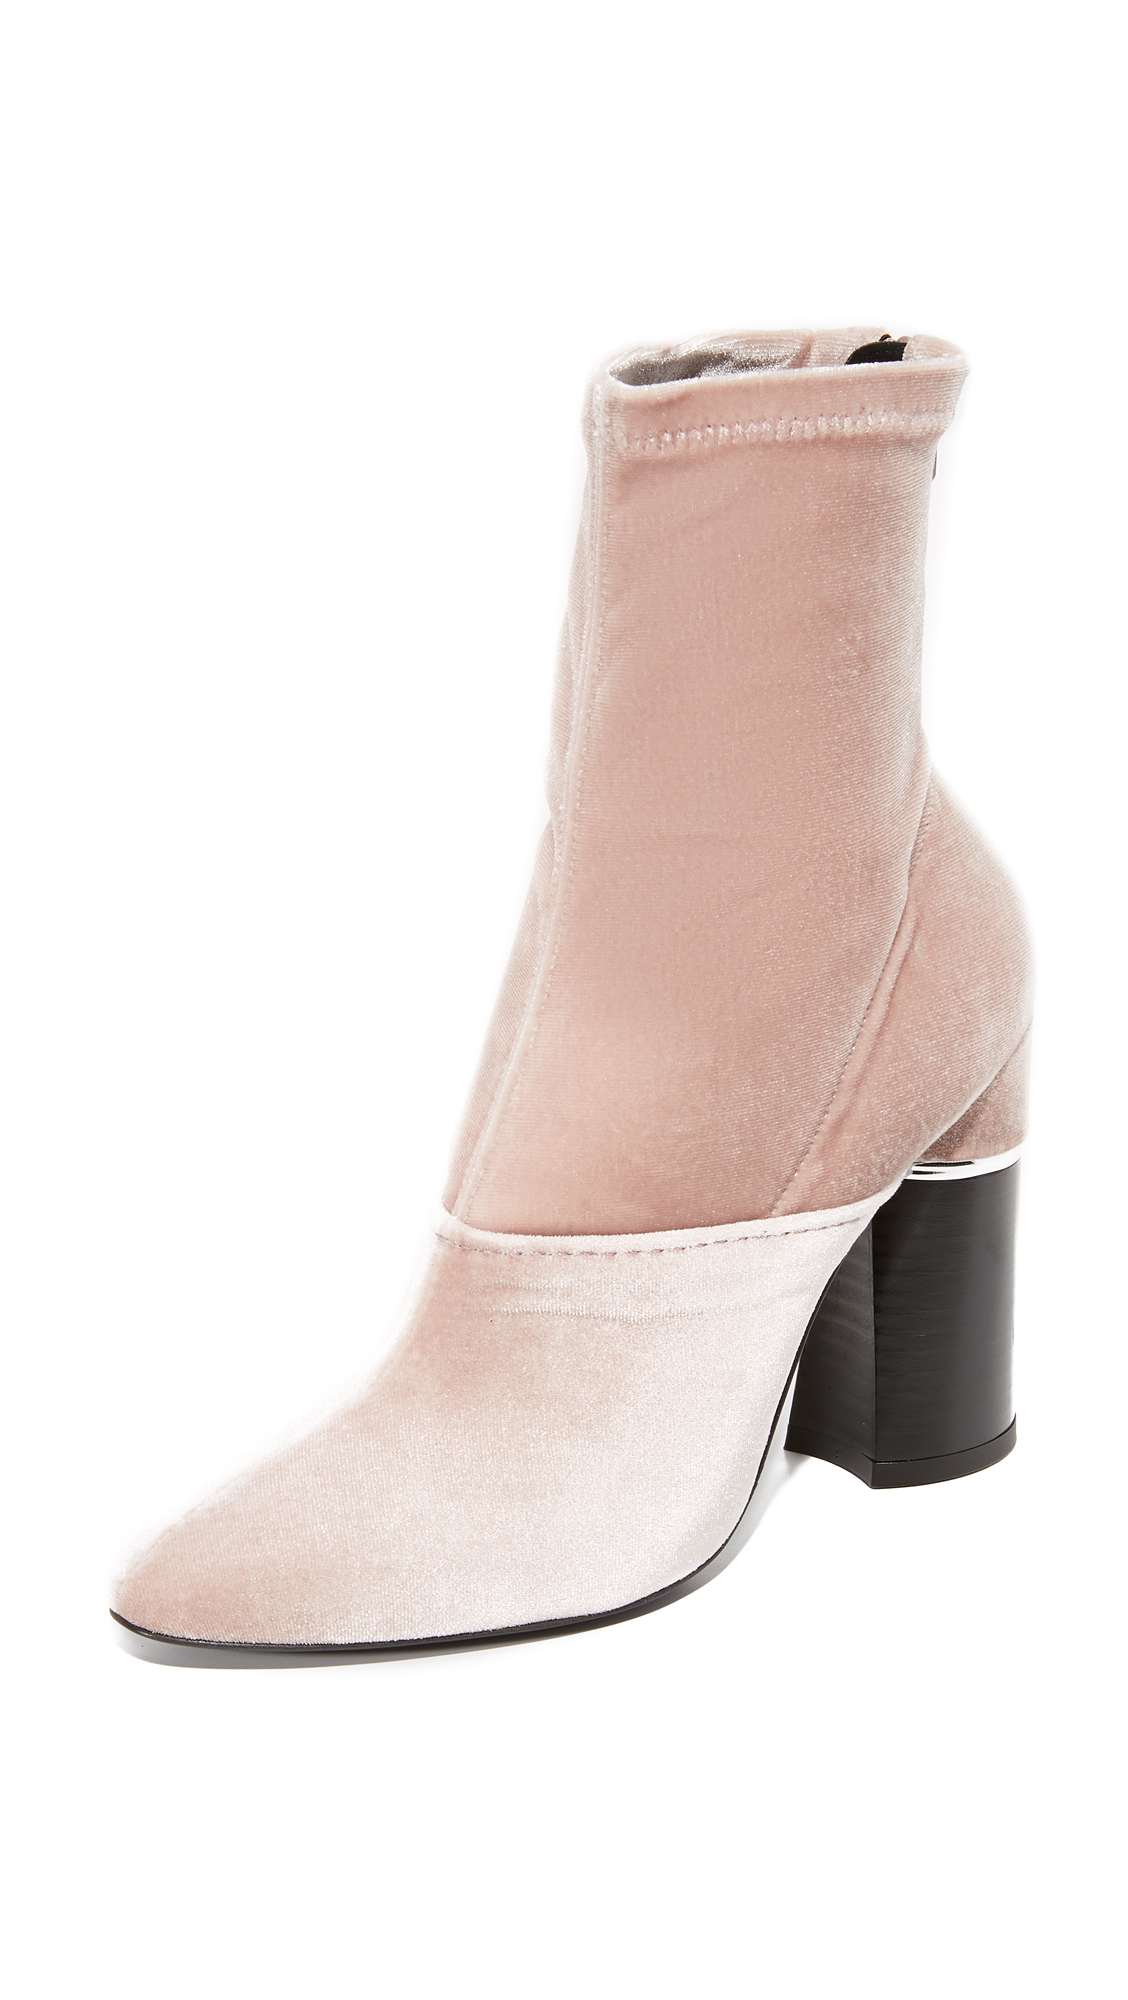 3.1 Phillip Lim Kyoto Booties - Blush